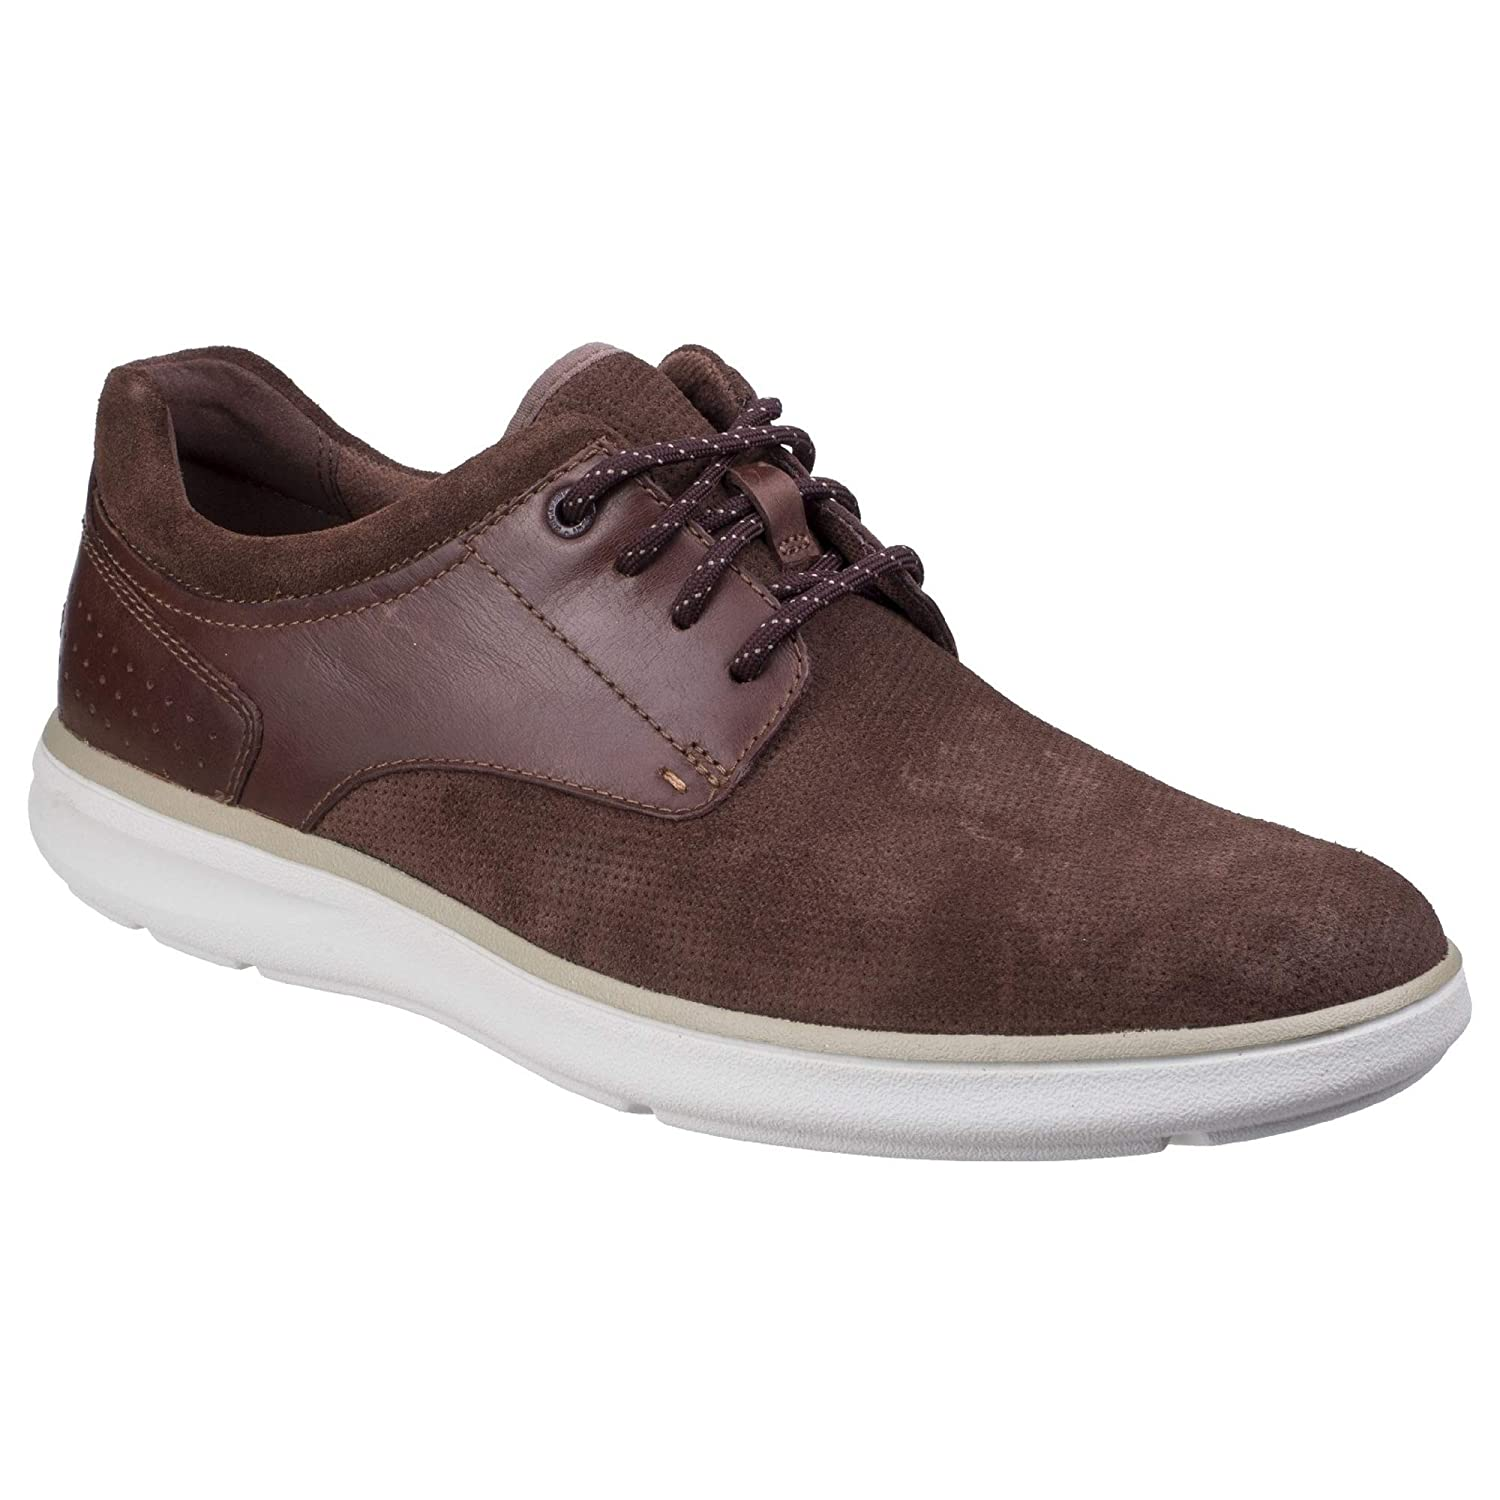 TALLA 43 EU. Rockport Mens Zaden Pointed Toe Blucher